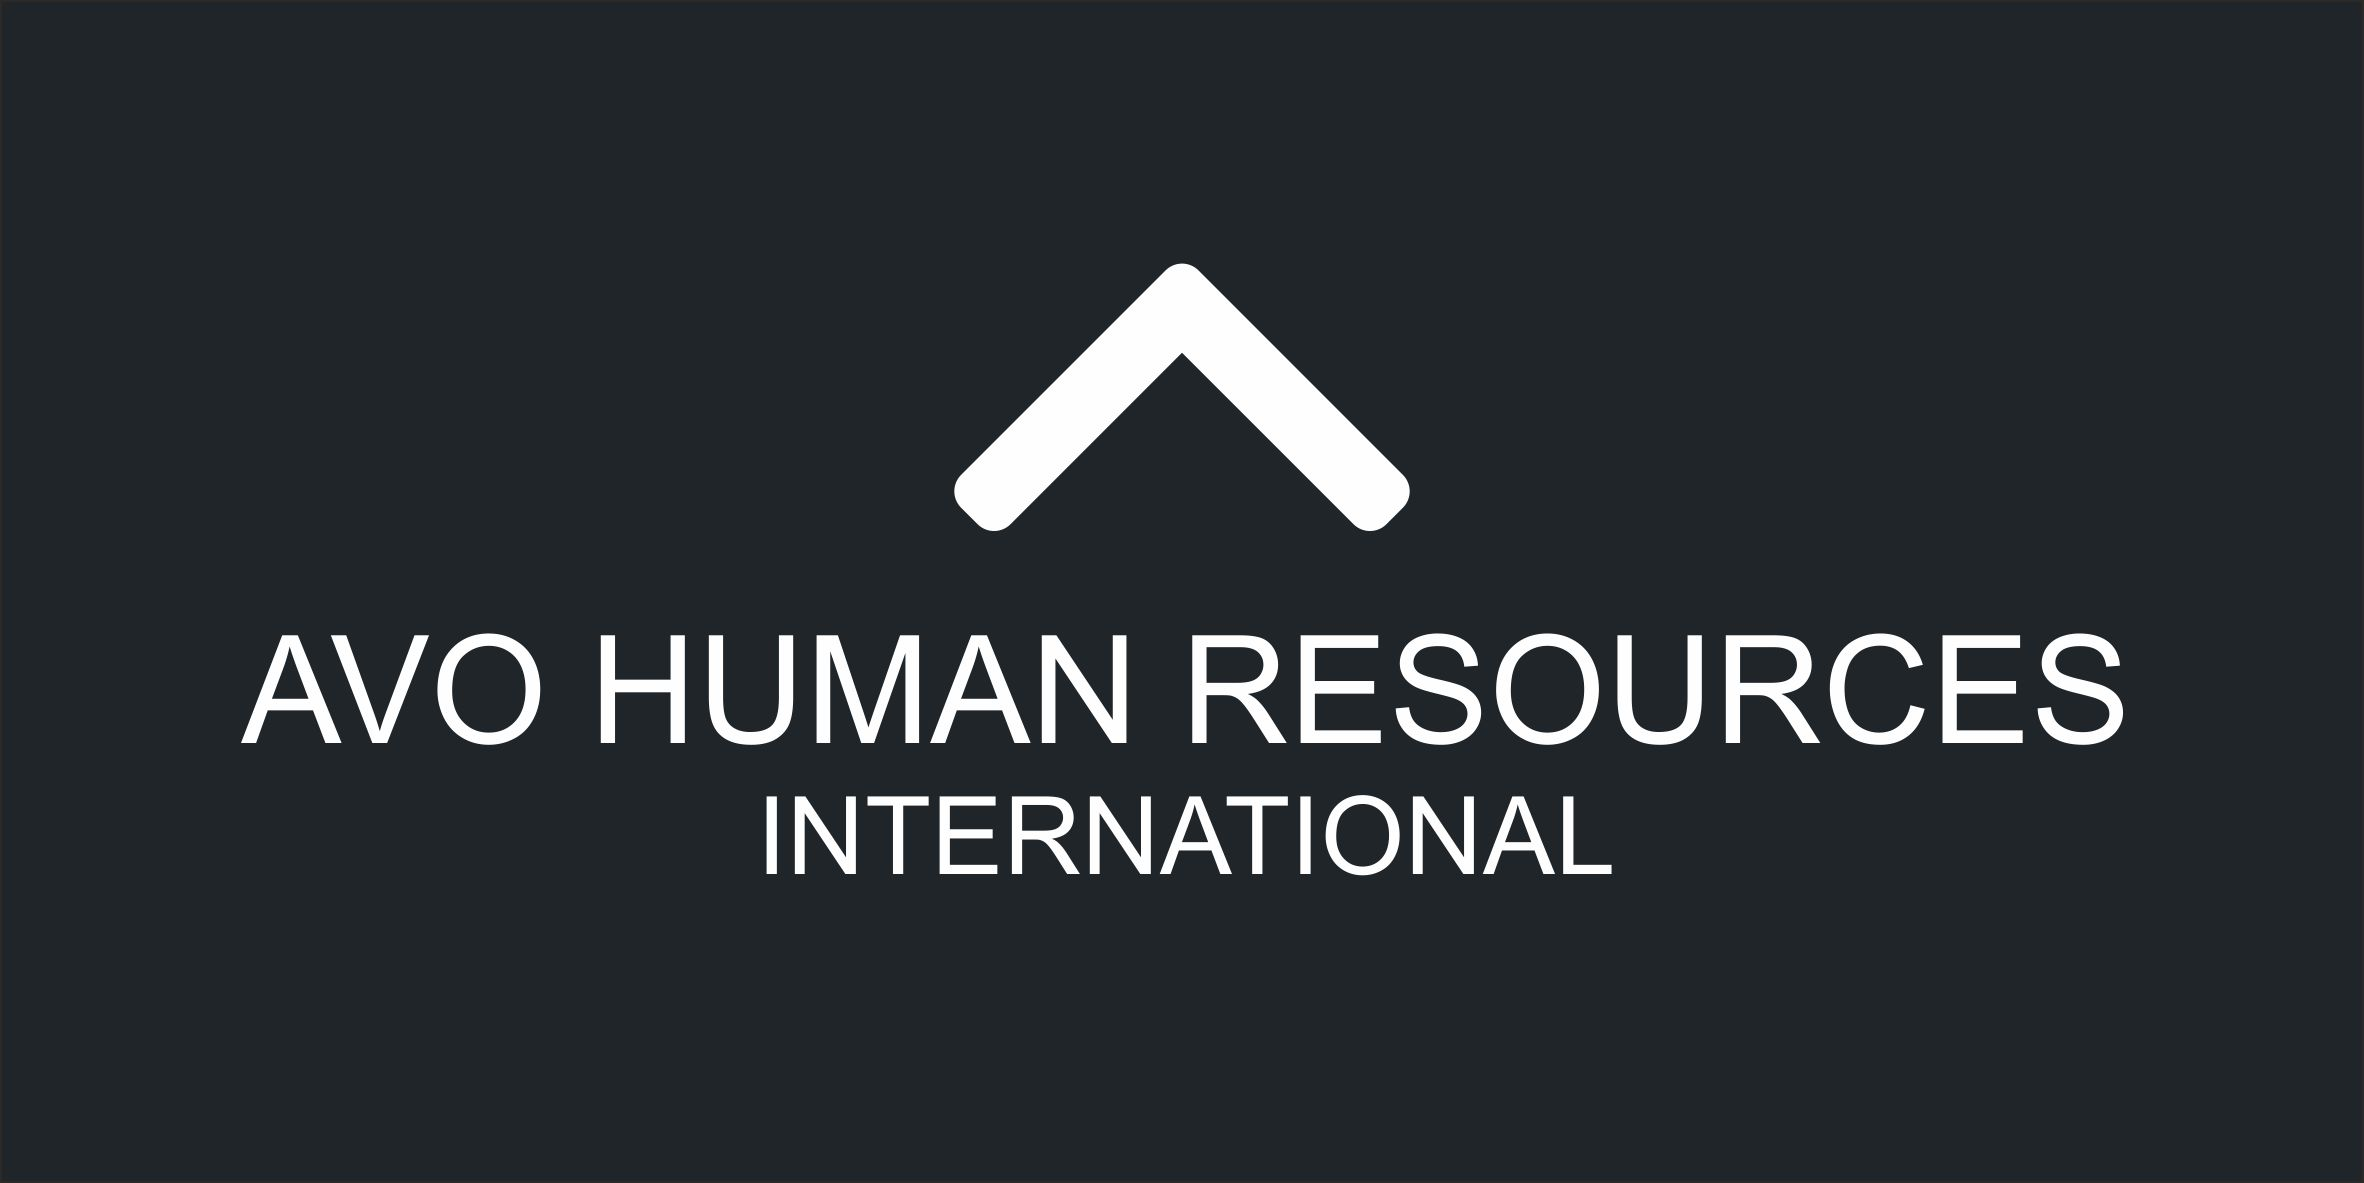 AVO Human Resources